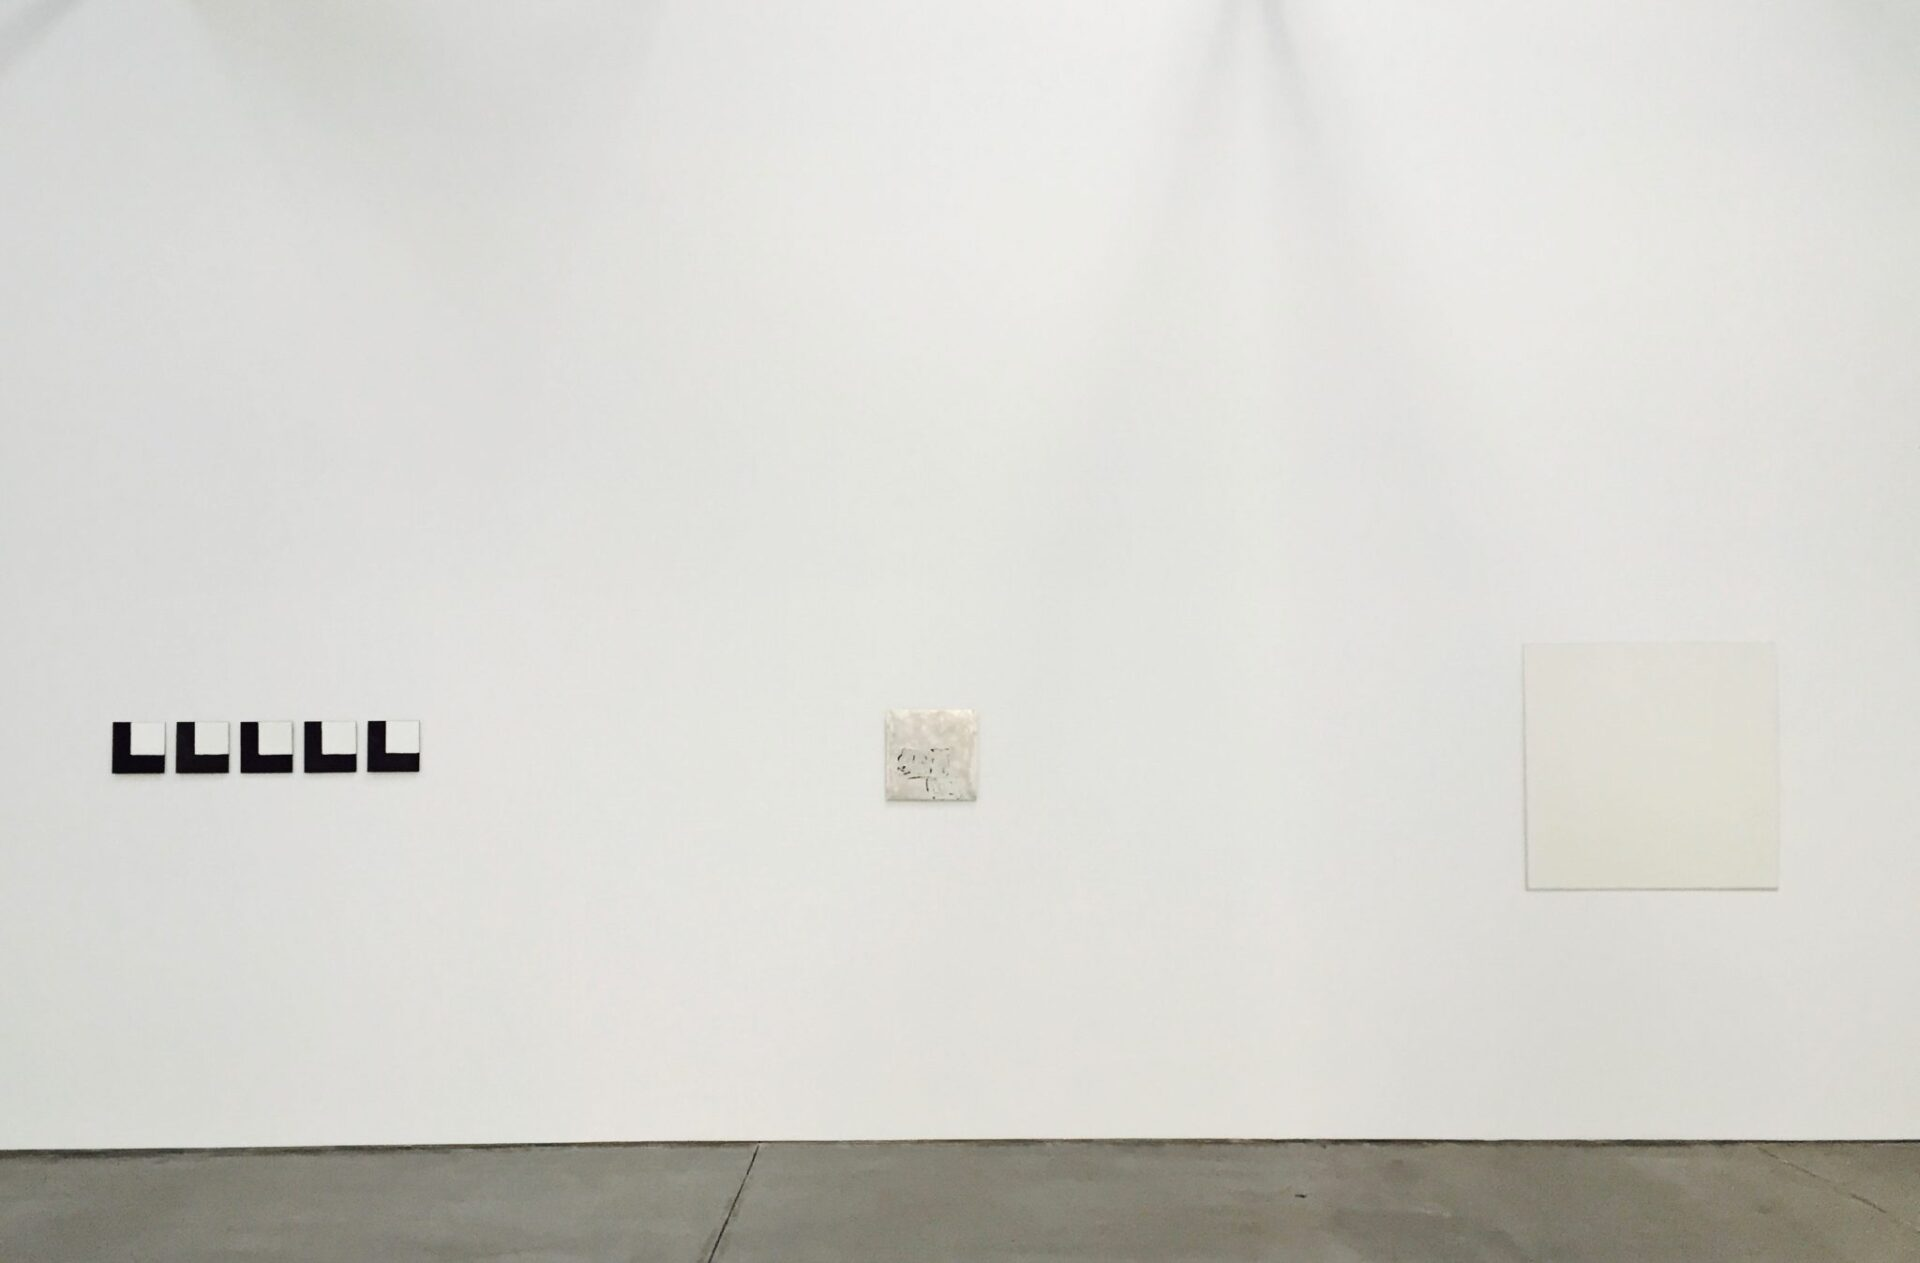 Robert Ryman. Gallery 2, installation view of the south wall. Ryman used manifold ways of distributing paint on a surface, including firing. The work on the left, Untitled, 1973, consists of double-baked vitreous enamel on oxidized copper.